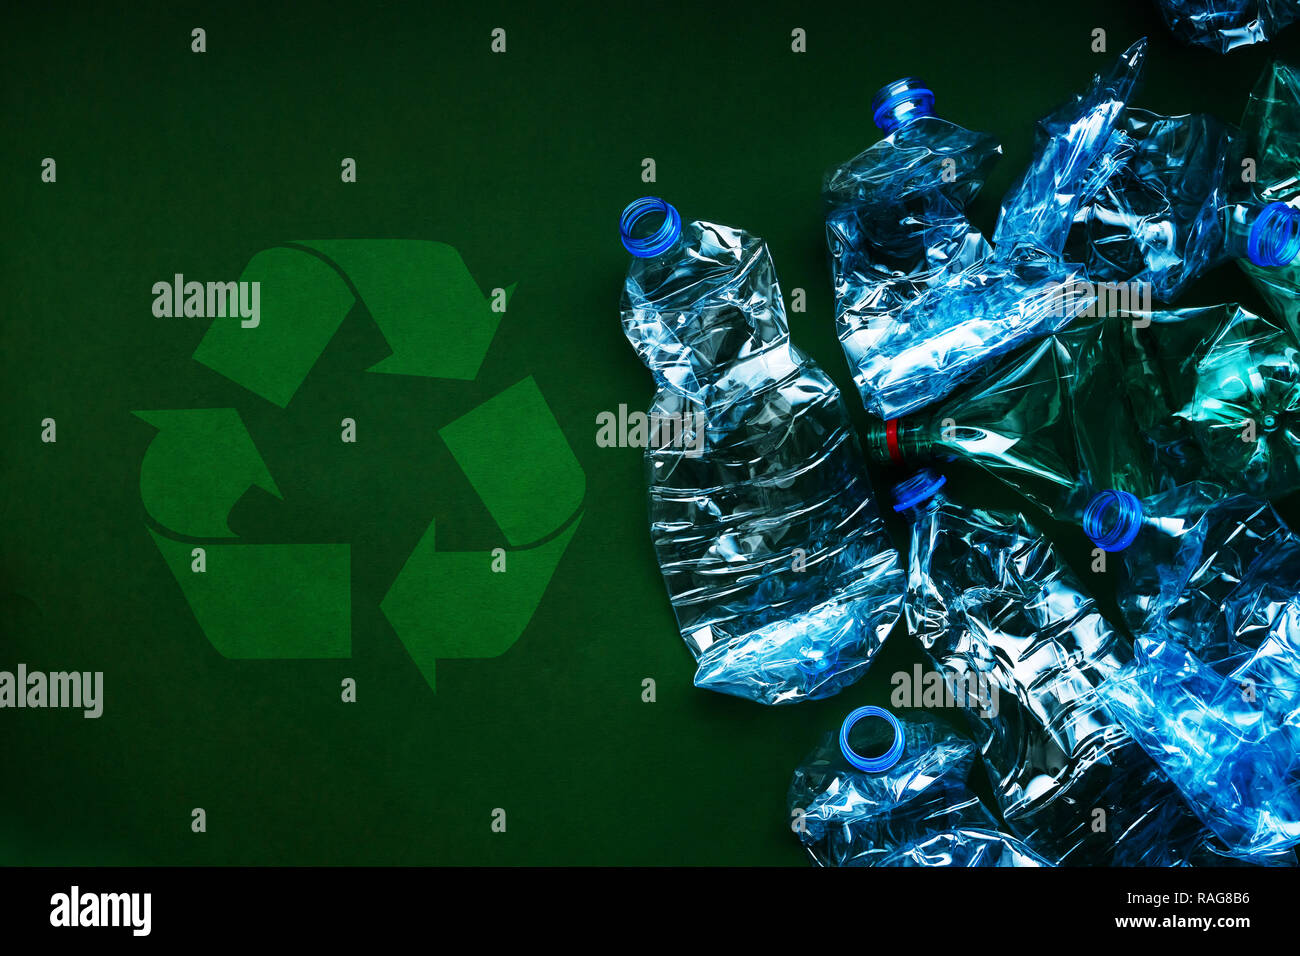 Plastic bottles for recycling, environmental damage and pollution concept - Stock Image